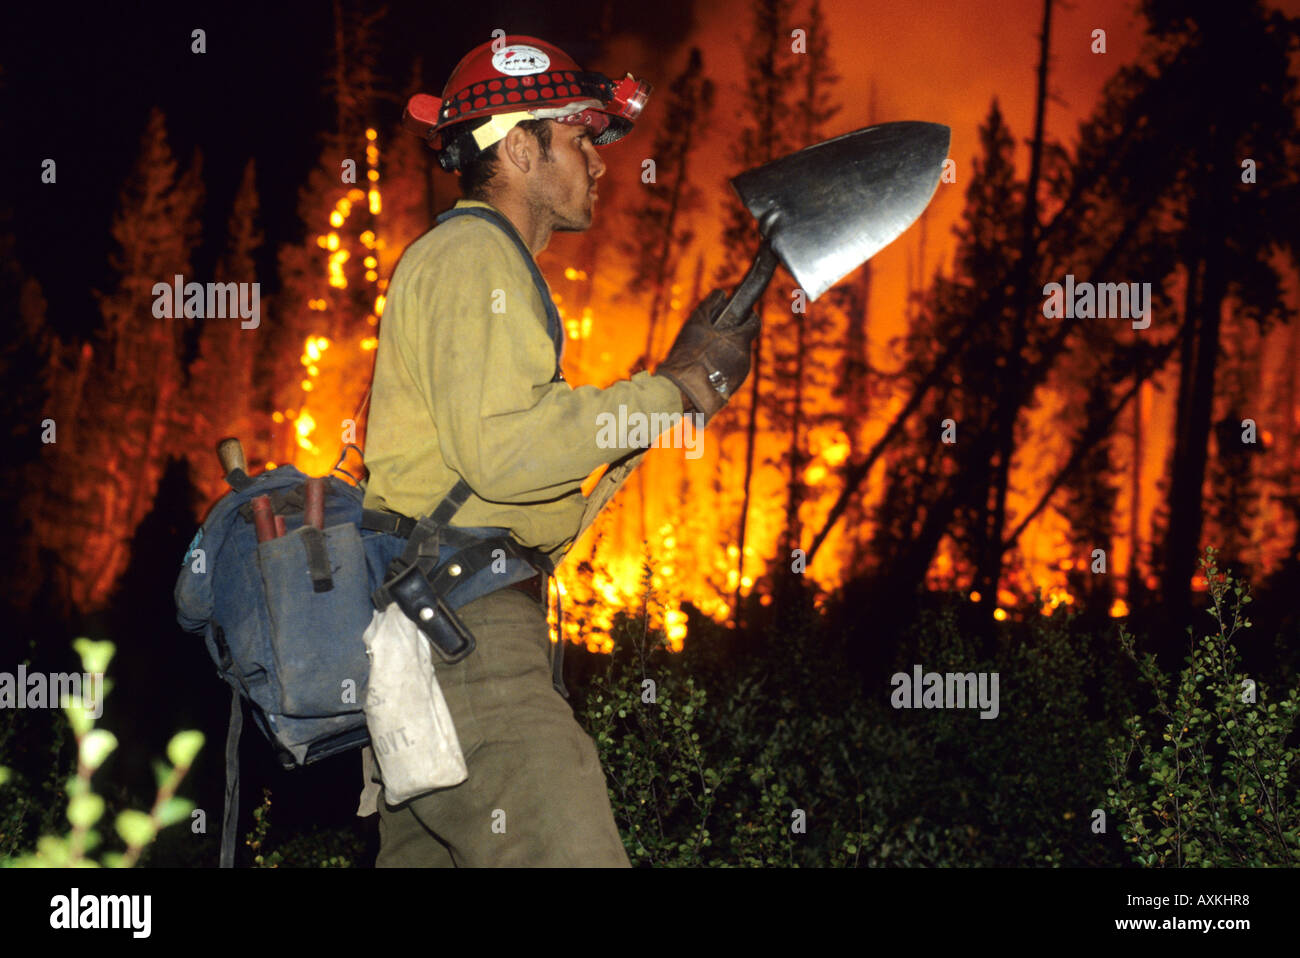 A firefighter working to put out the Cub Creek forest fire near Lowman Idaho - Stock Image